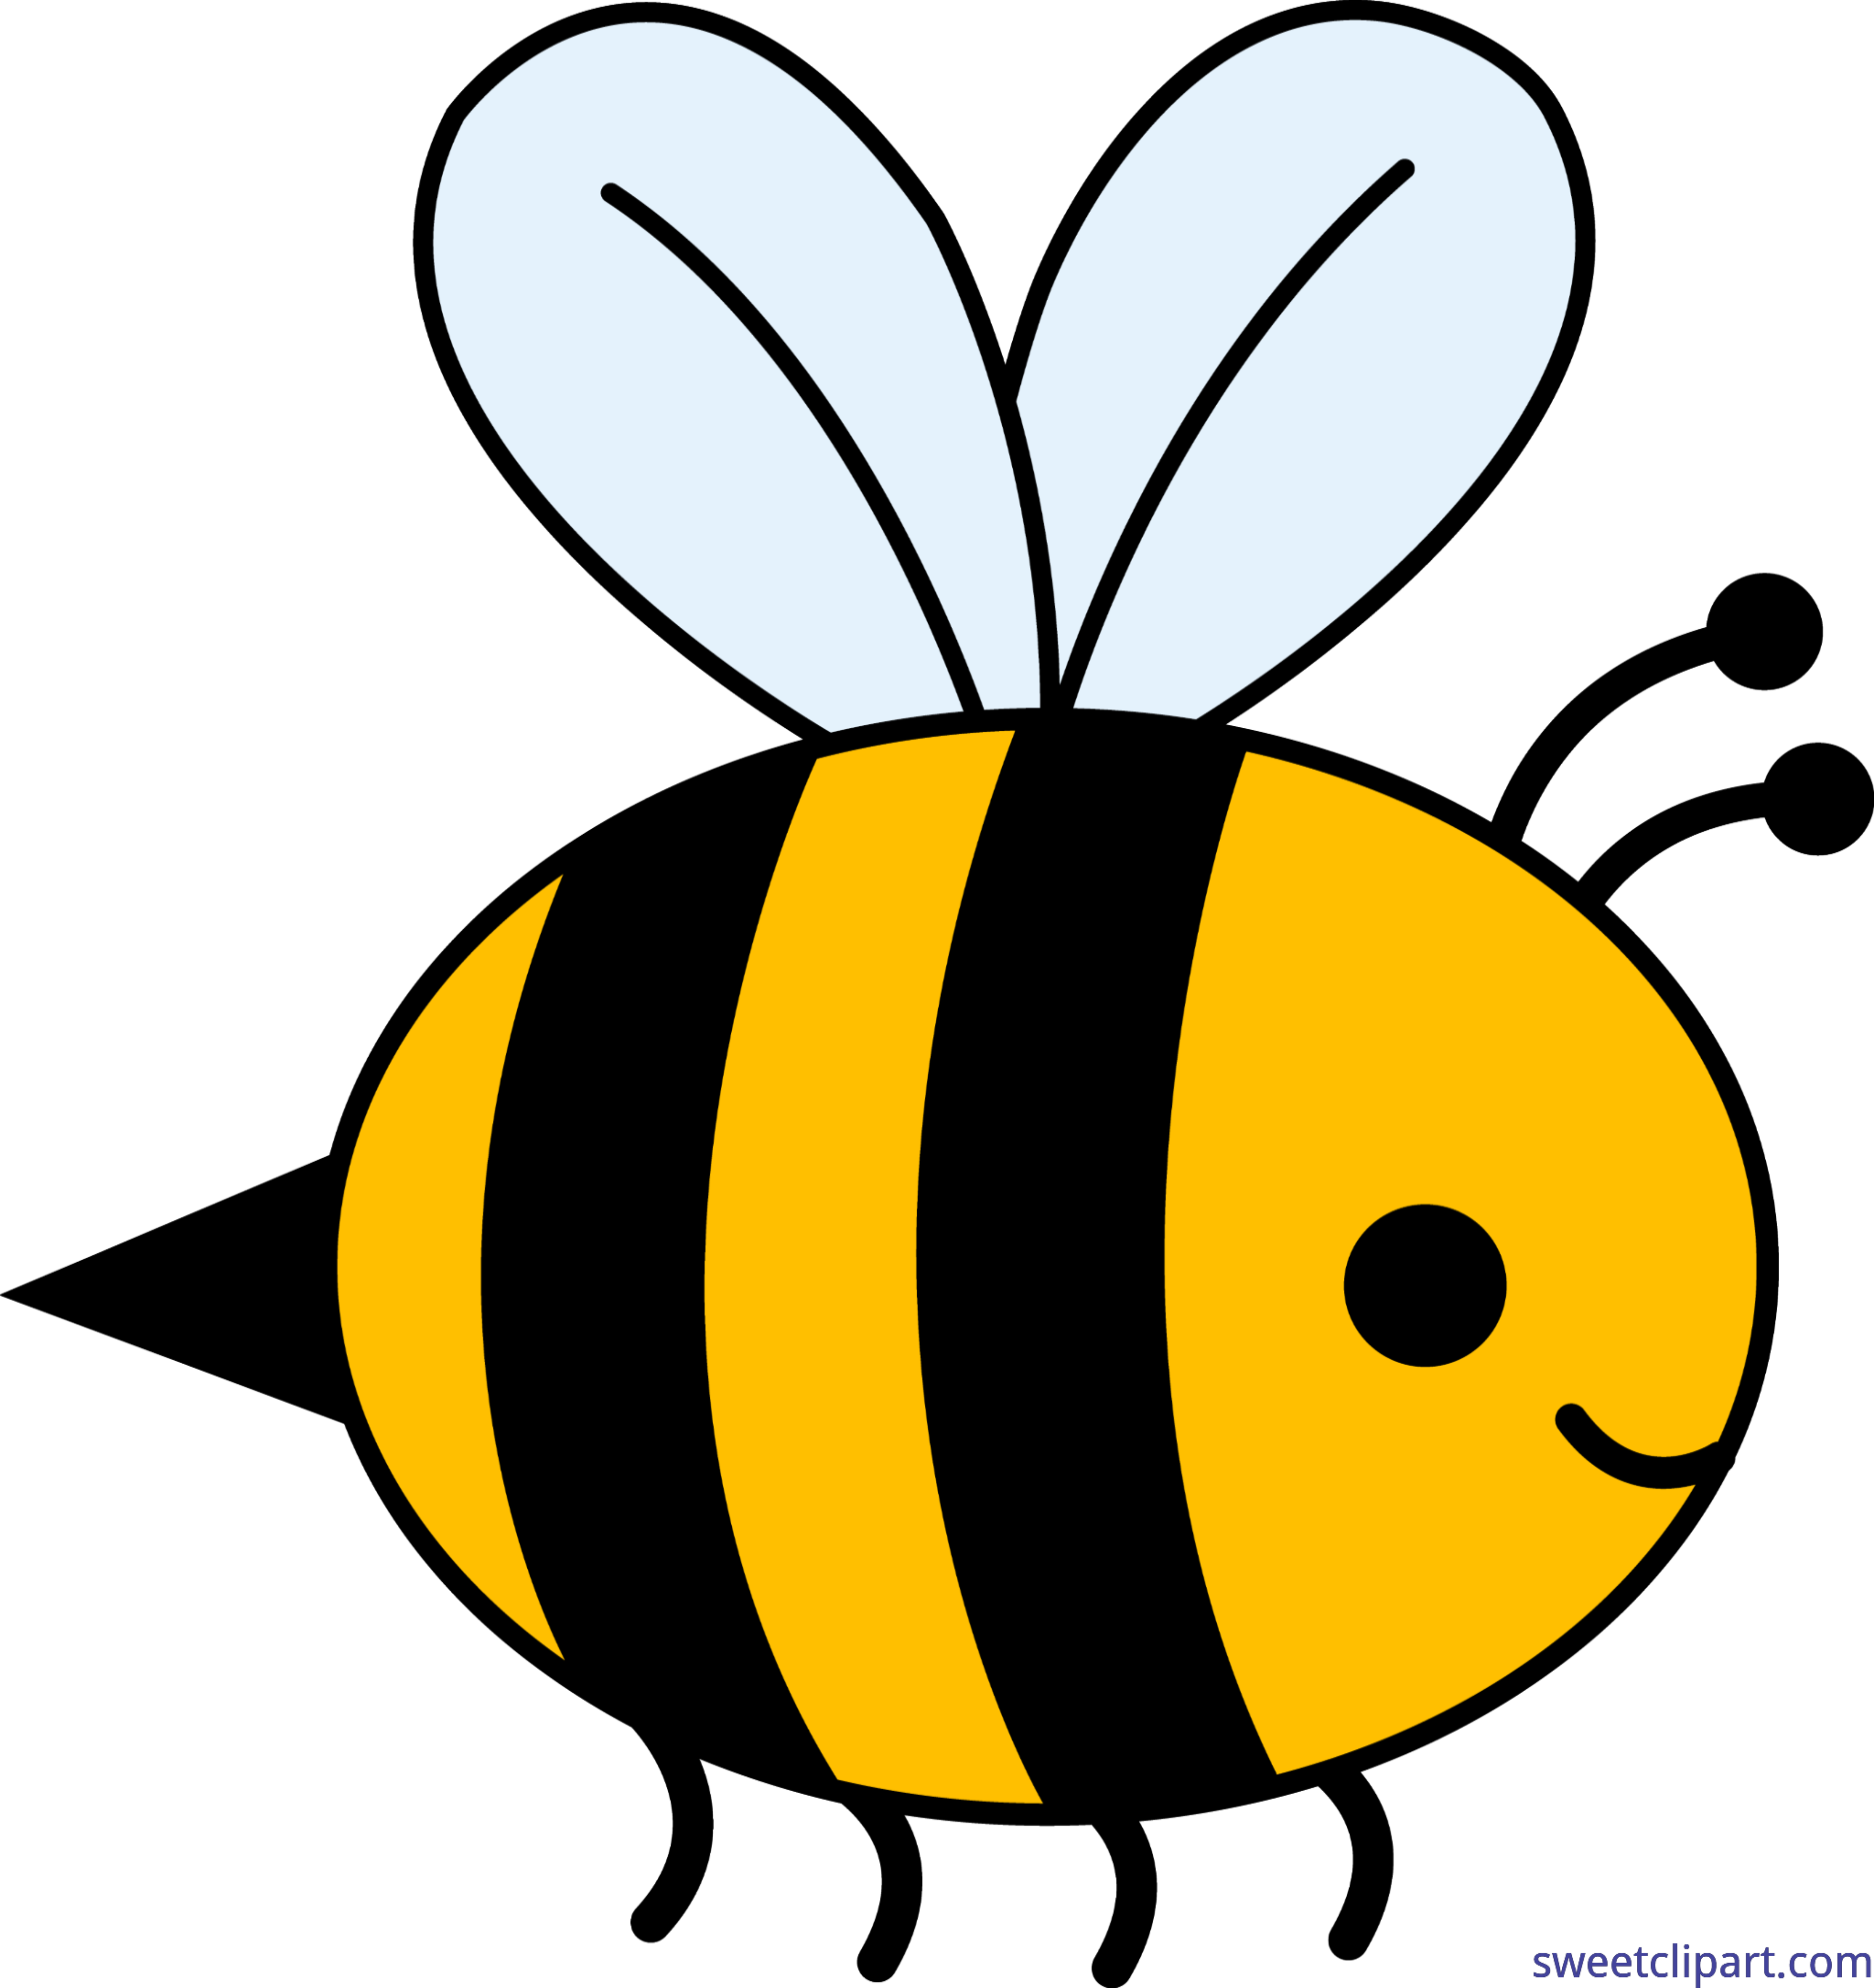 Bumble art sweet. Bee clip vector library download